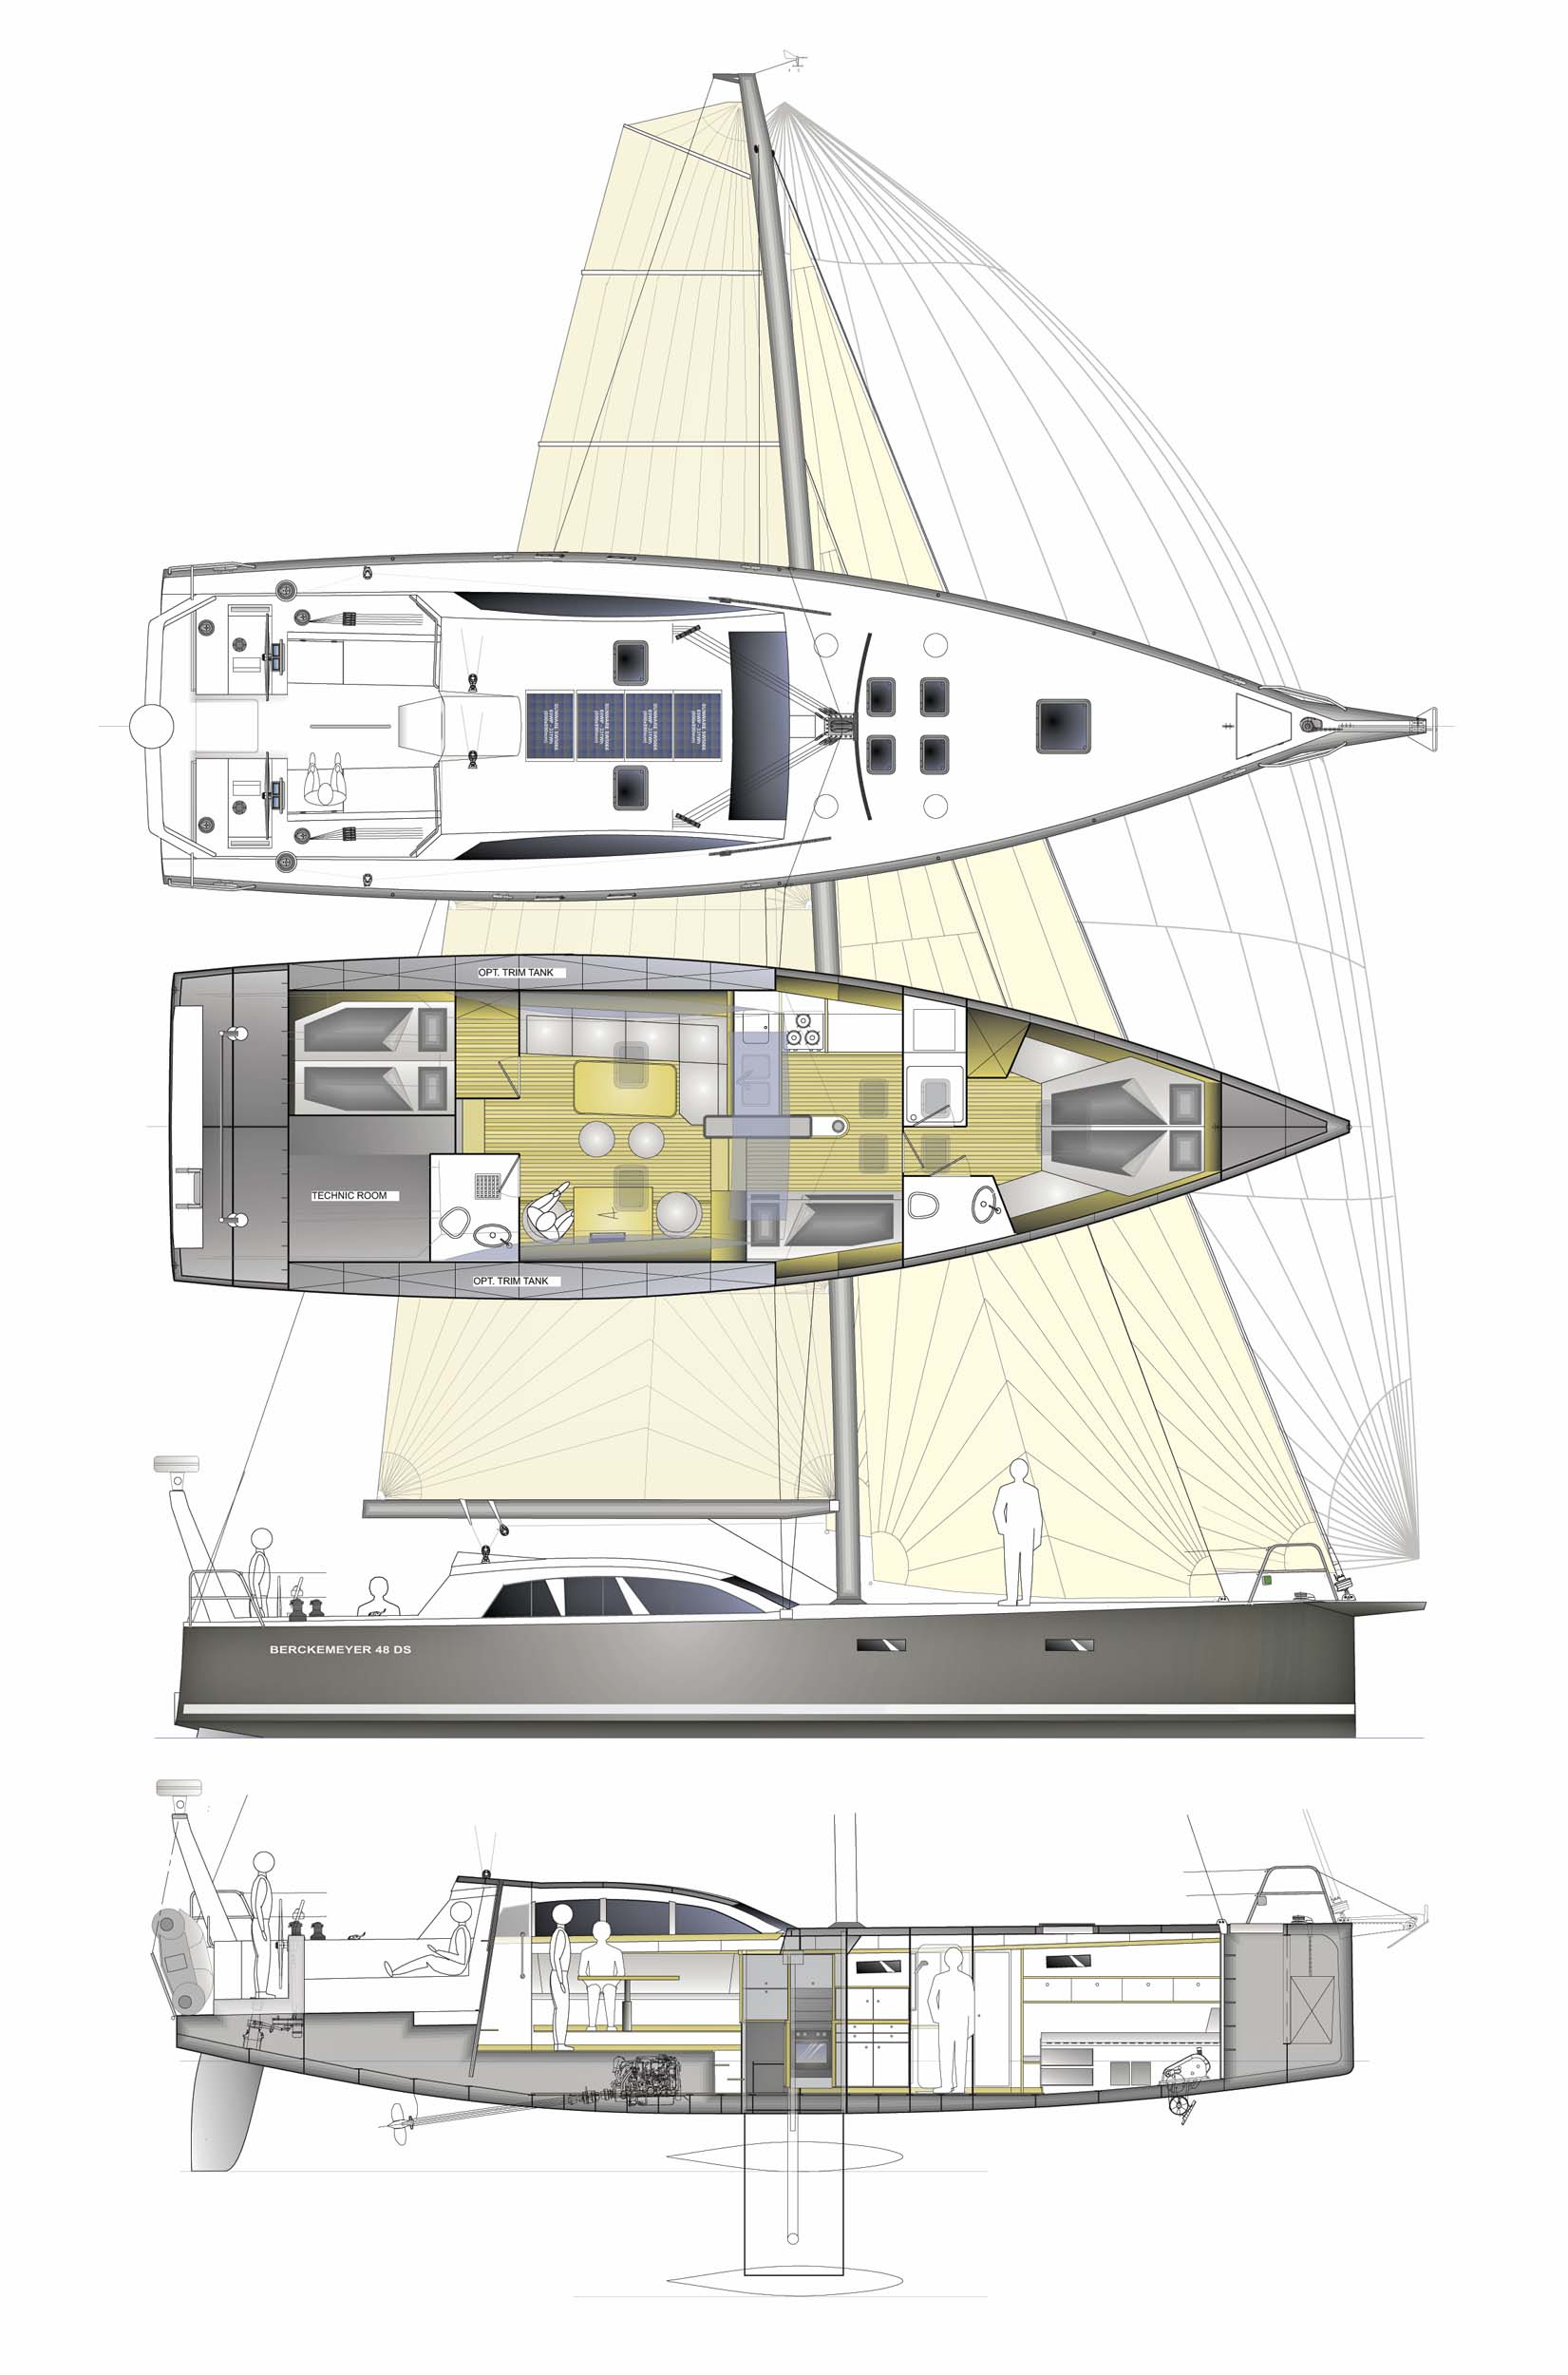 berckemeyer yacht design plans for modern and classic sailing yachts